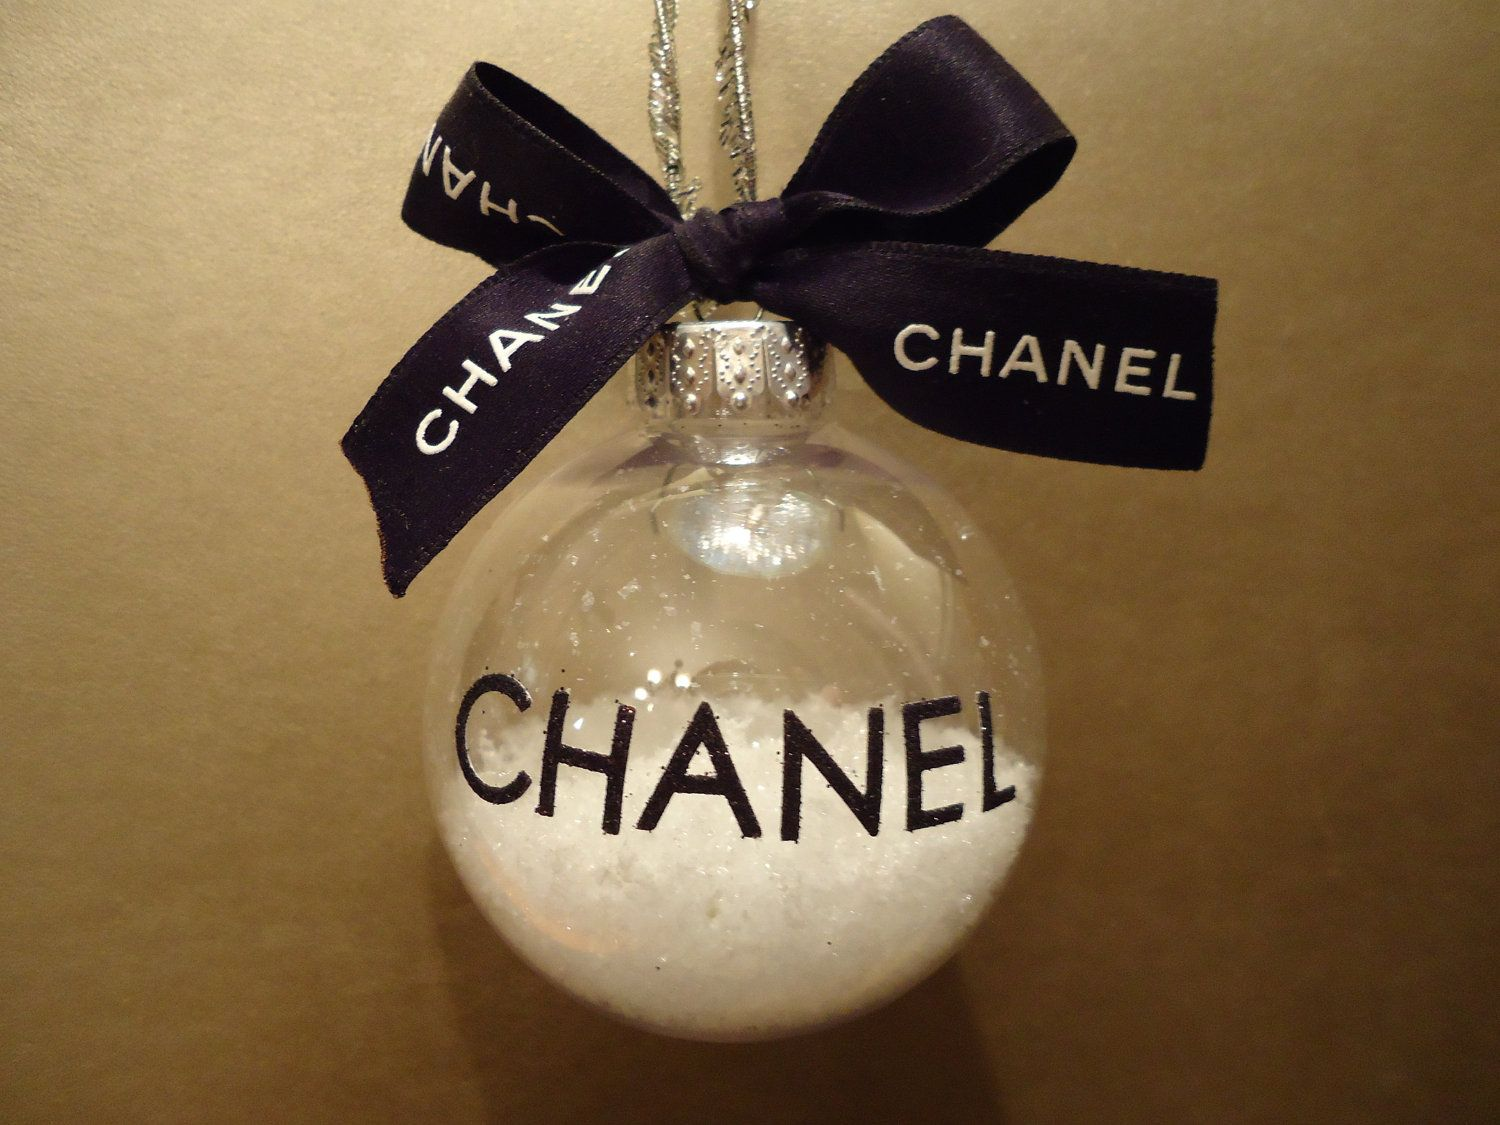 Chanel Christmas Ornaments.Chanel Christmas Tree Ornaments Party Christmas